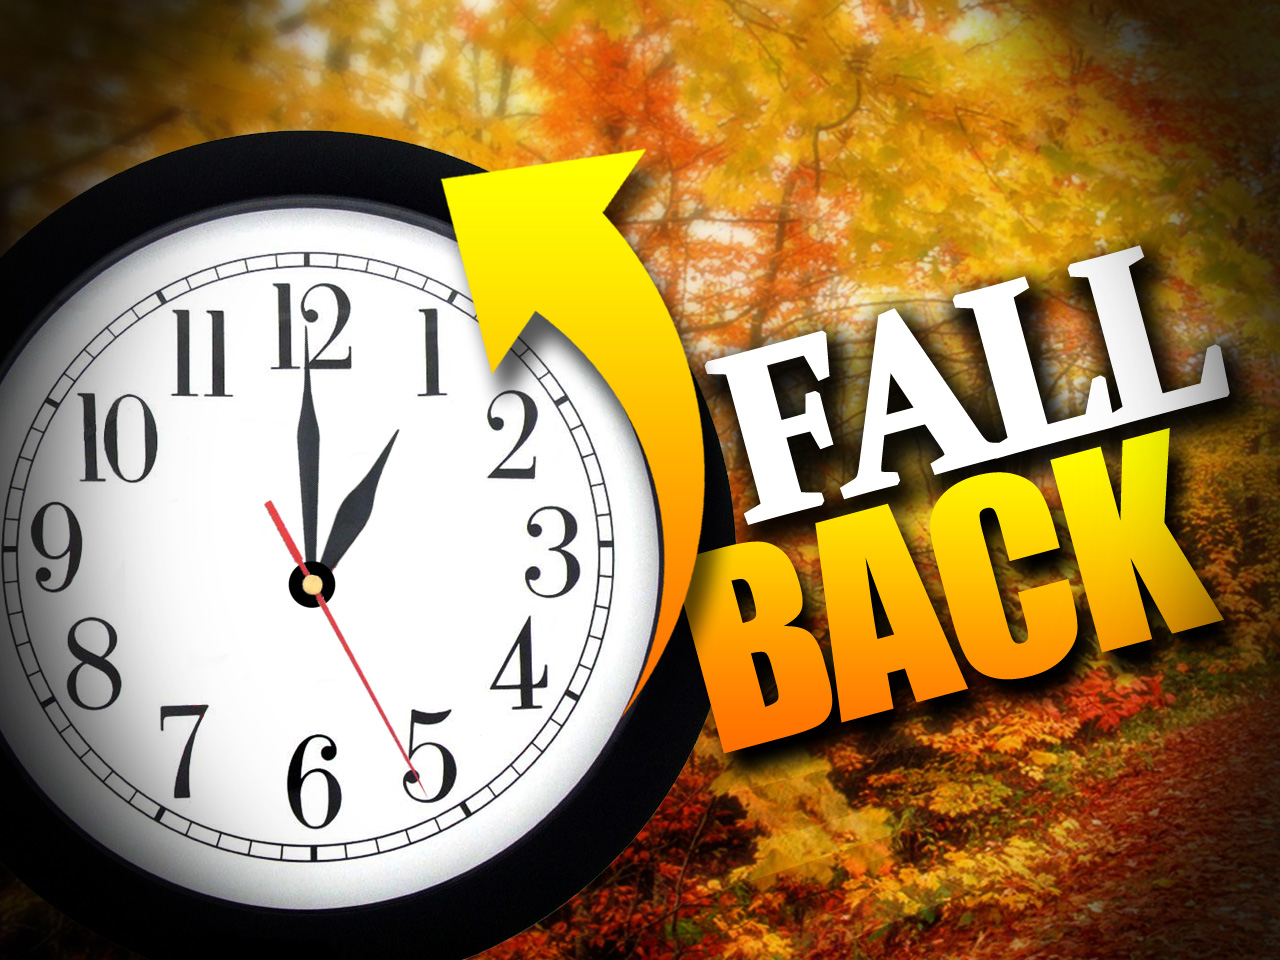 Fall back clipart free image library download Fall Back 2014 image library download